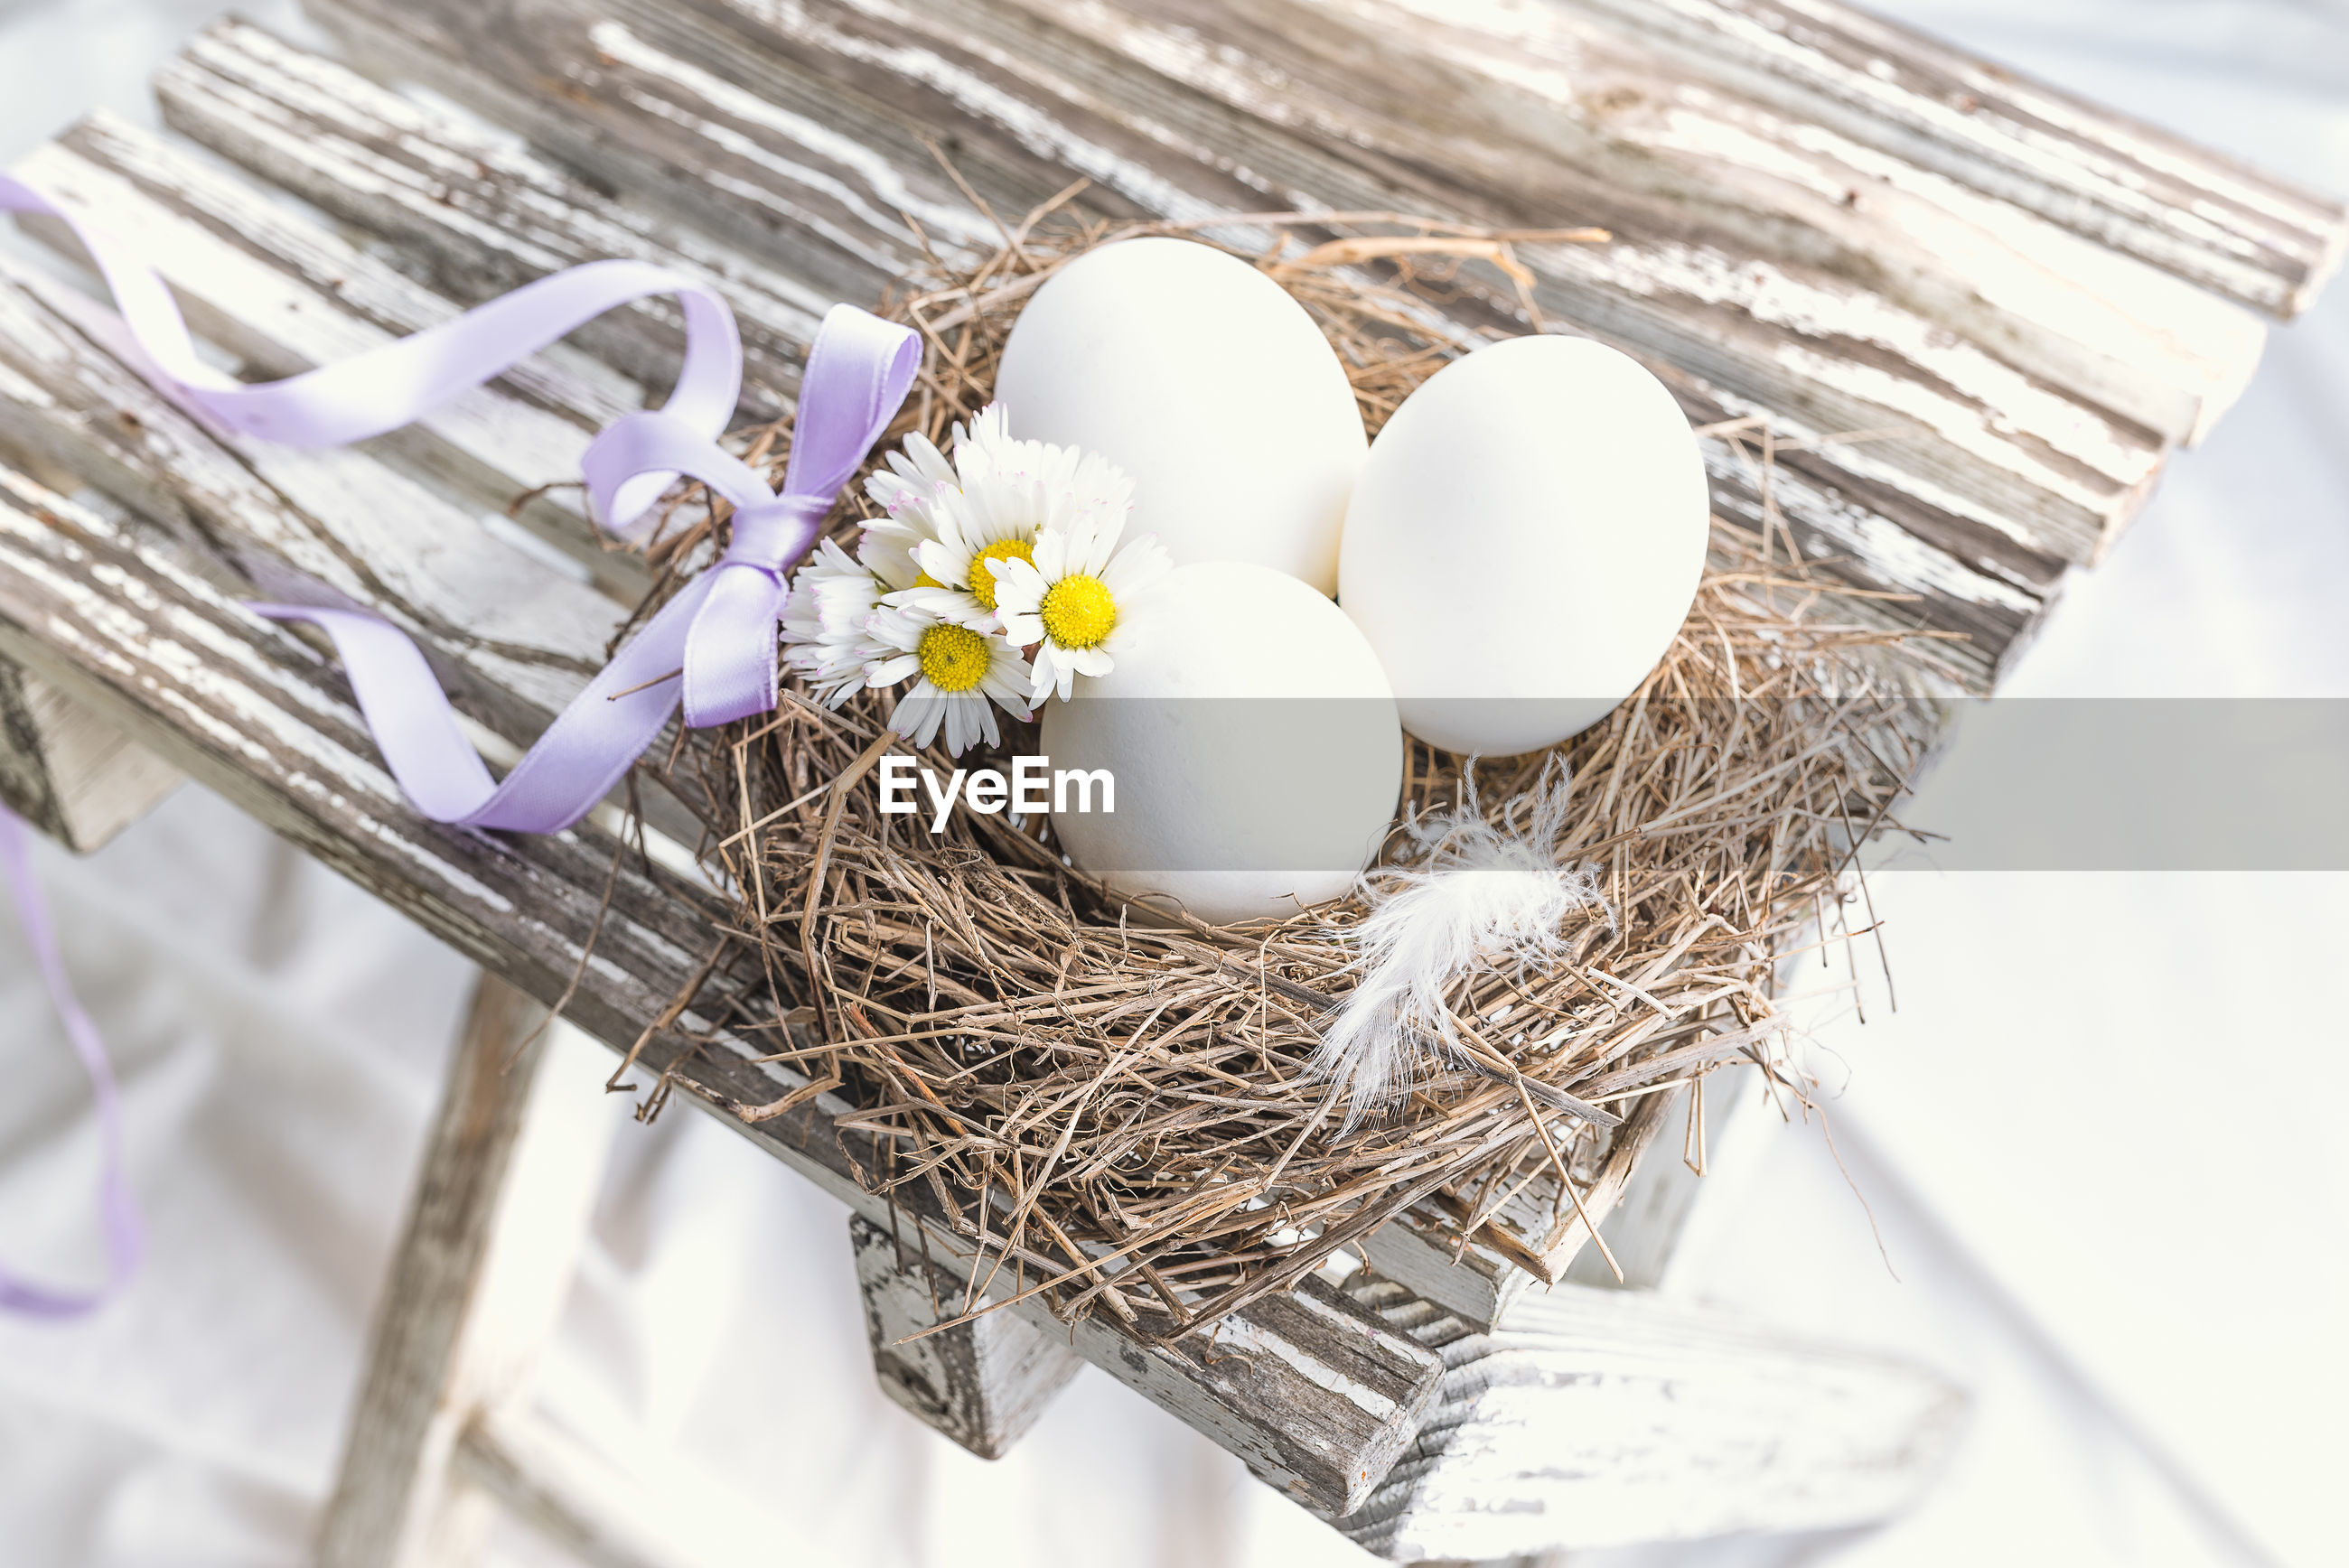 High angle view of eggs in nest by flowers on table